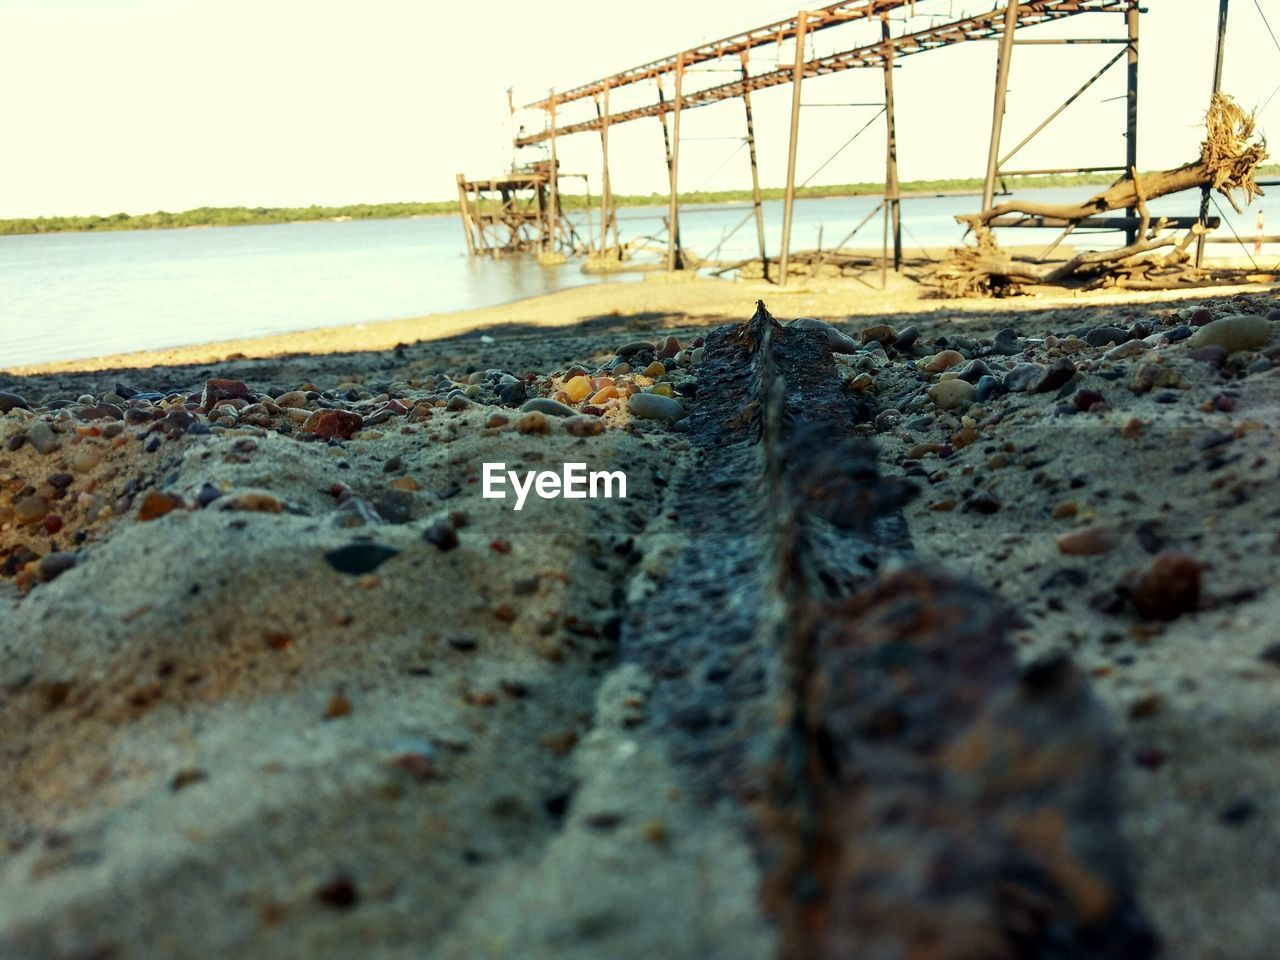 surface level, water, outdoors, no people, sea, day, nature, beach, clear sky, bridge - man made structure, architecture, built structure, sky, beauty in nature, close-up